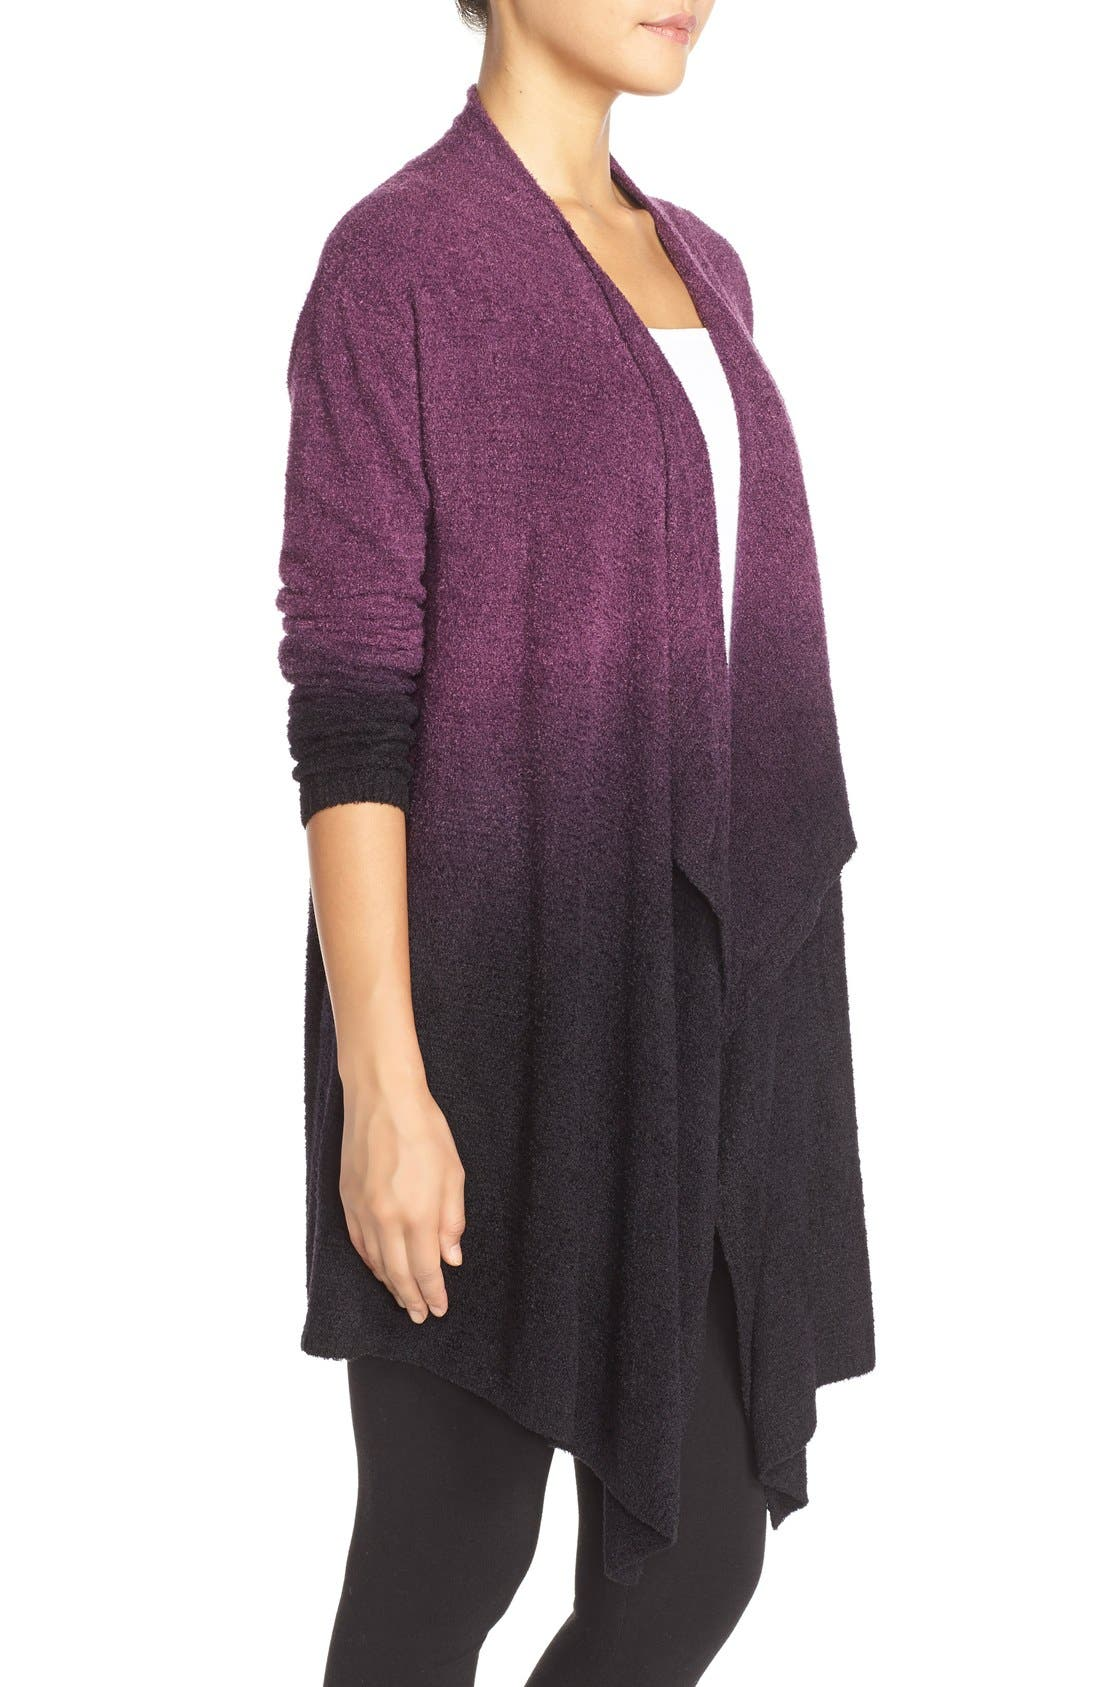 Alternate Image 3  - Barefoot Dreams® CozyChic Lite® Calypso Wrap Cardigan (Nordstrom Exclusive)